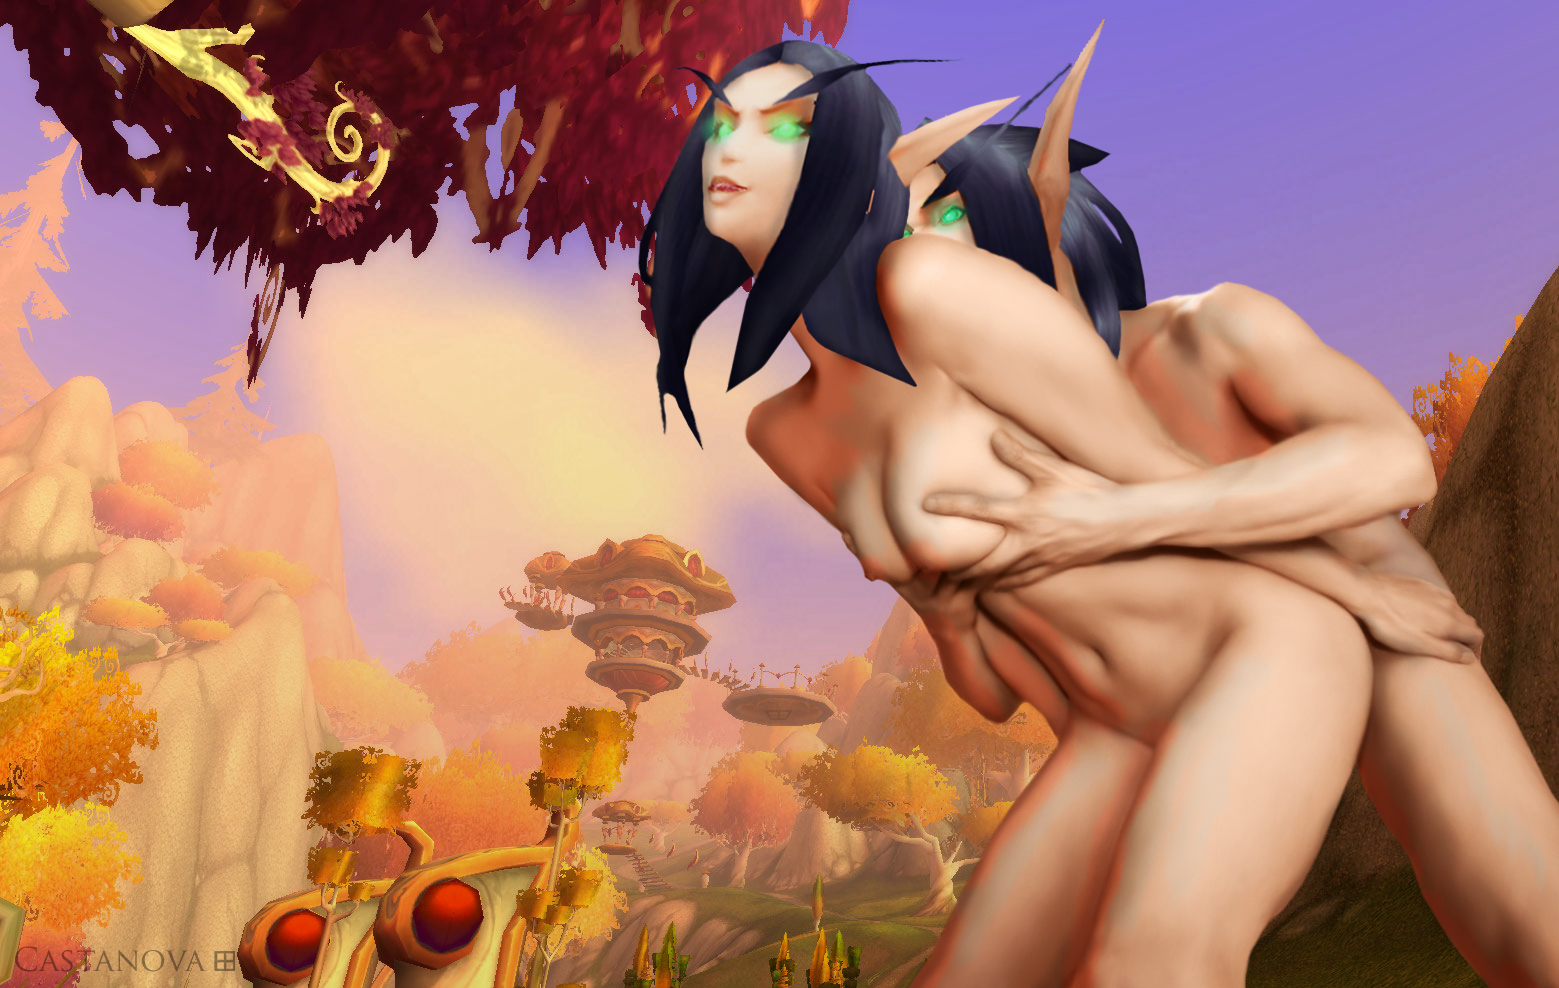 Blood elf nucked world of porncraft anime pic